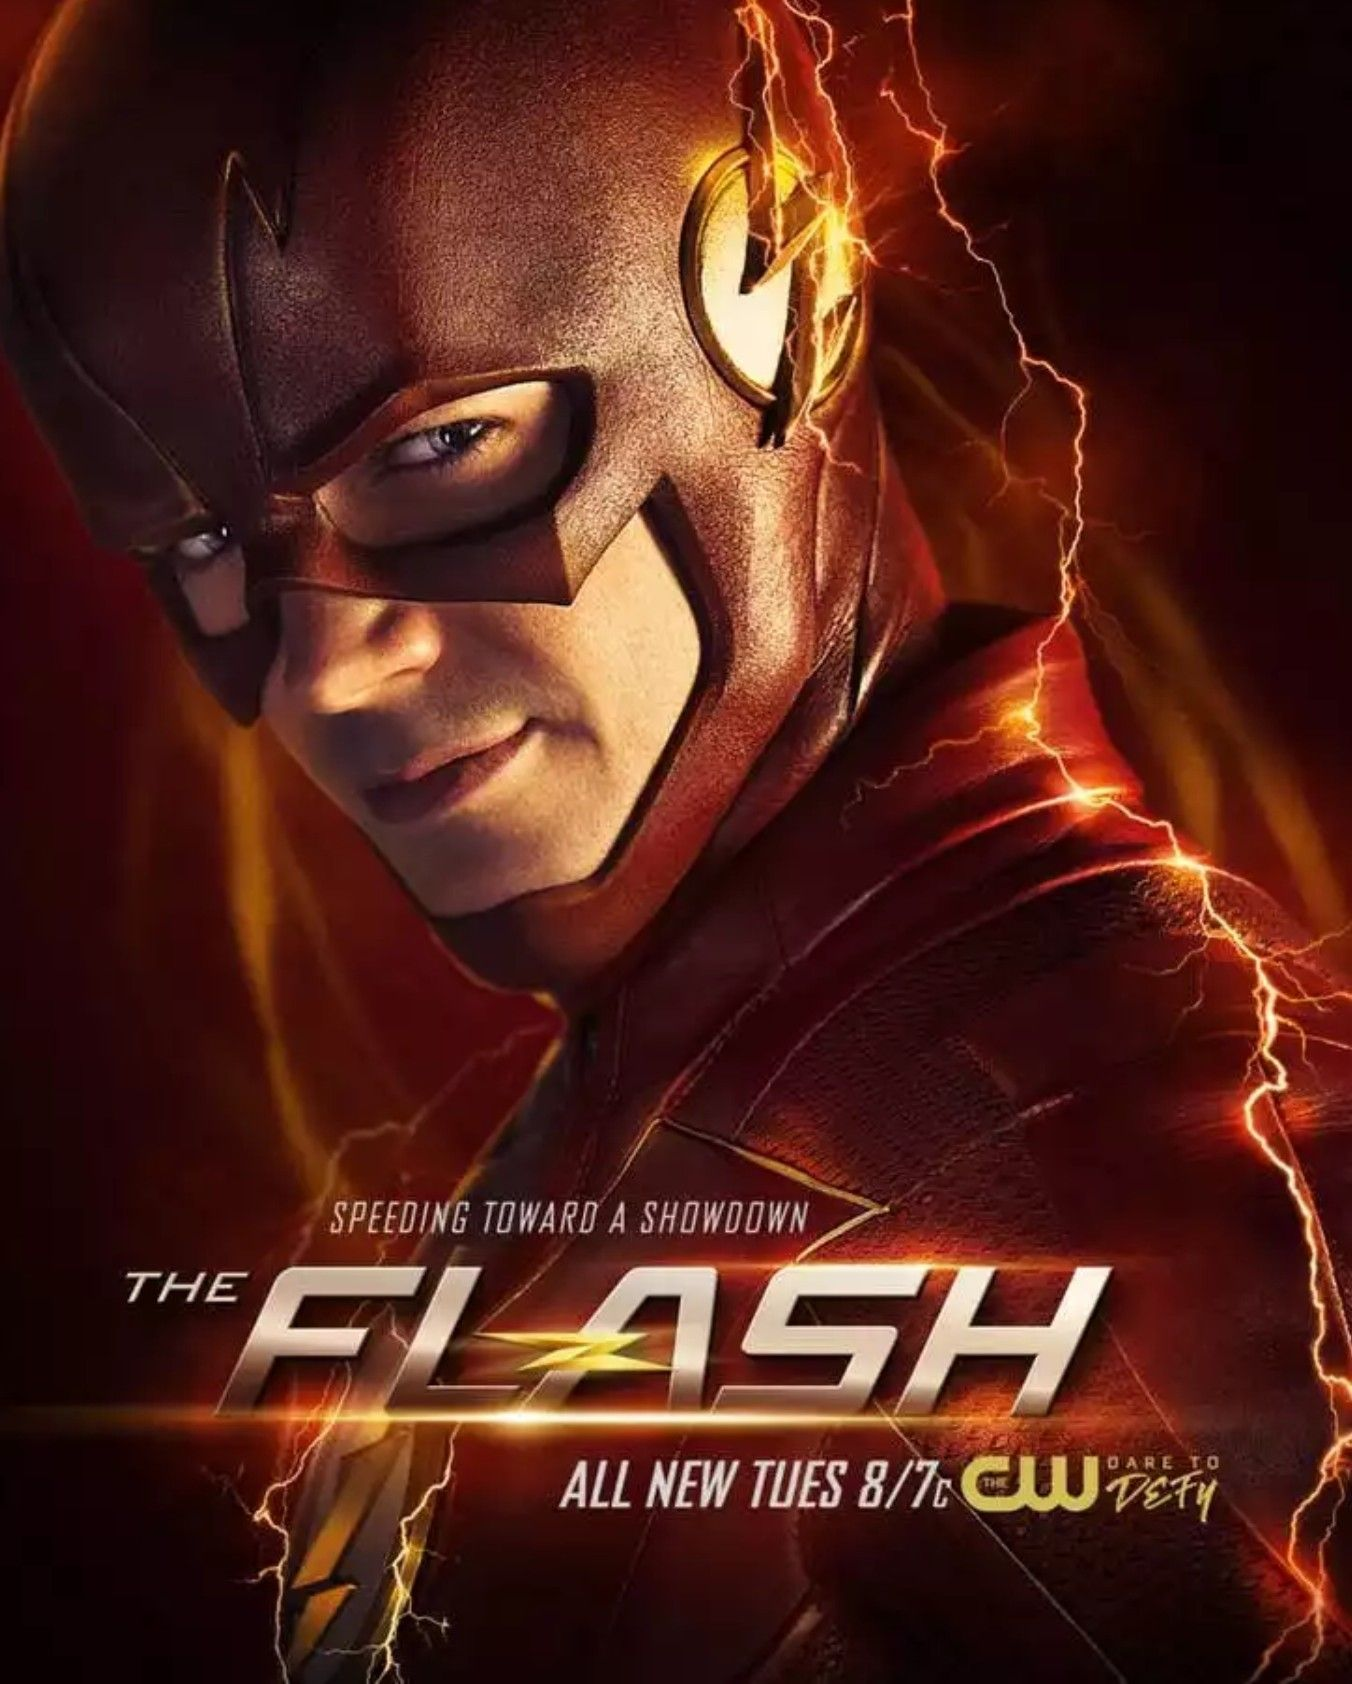 The Flash Season 4 New Poster The Flash Poster The Flash Season Flash Season 4